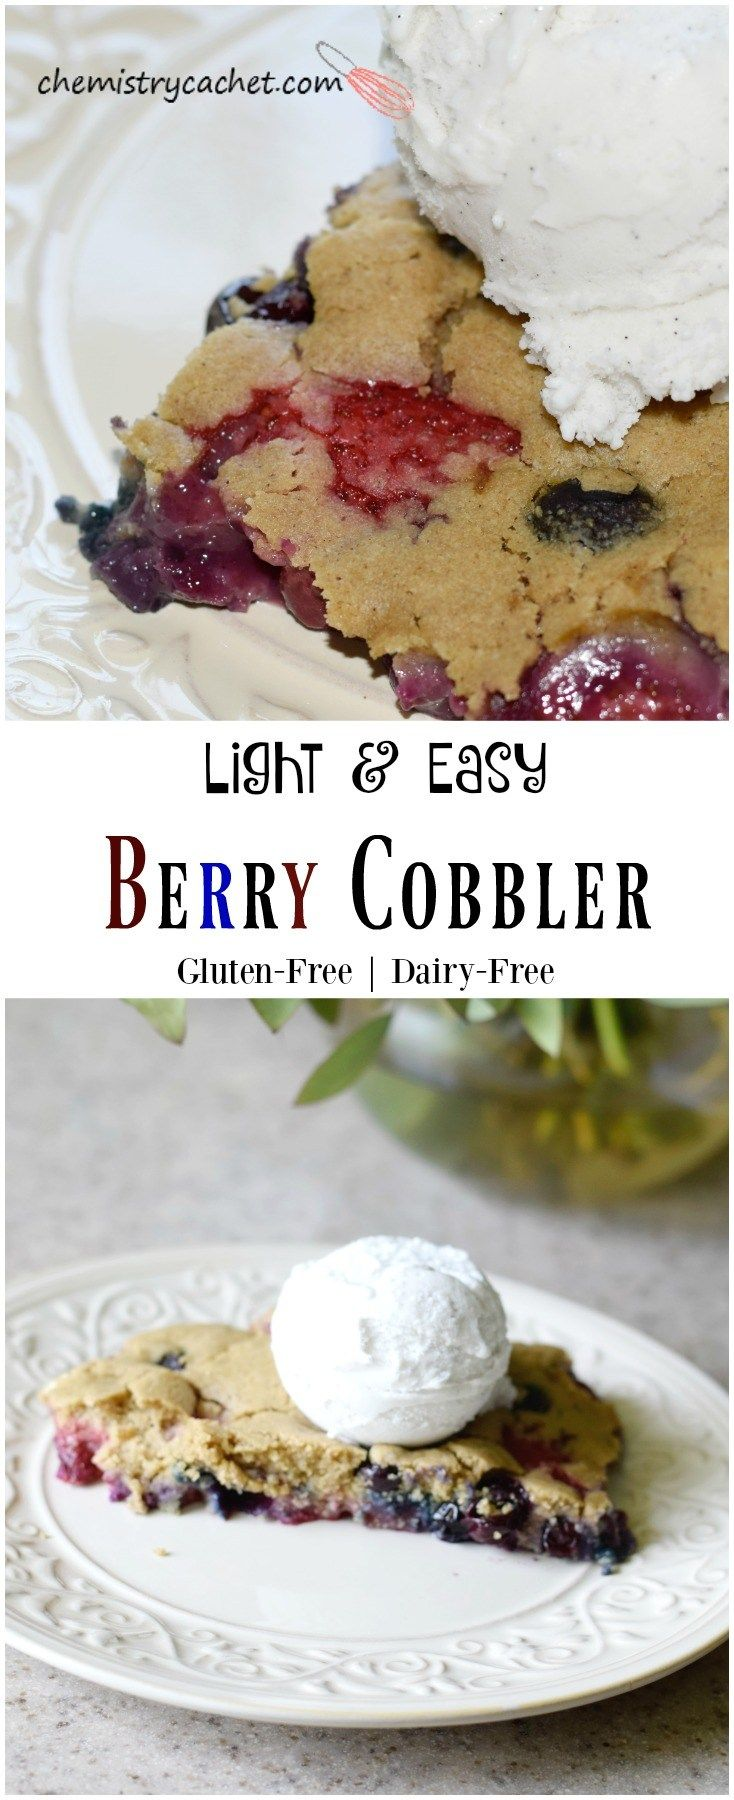 Easy Dairy-Free Berry Cobbler Recipe. This is so light, refreshing, and healthy! Dairy-free cobbler, gluten-free cobbler, and Egg-free cobbler recipe! on chemistrycachet.com